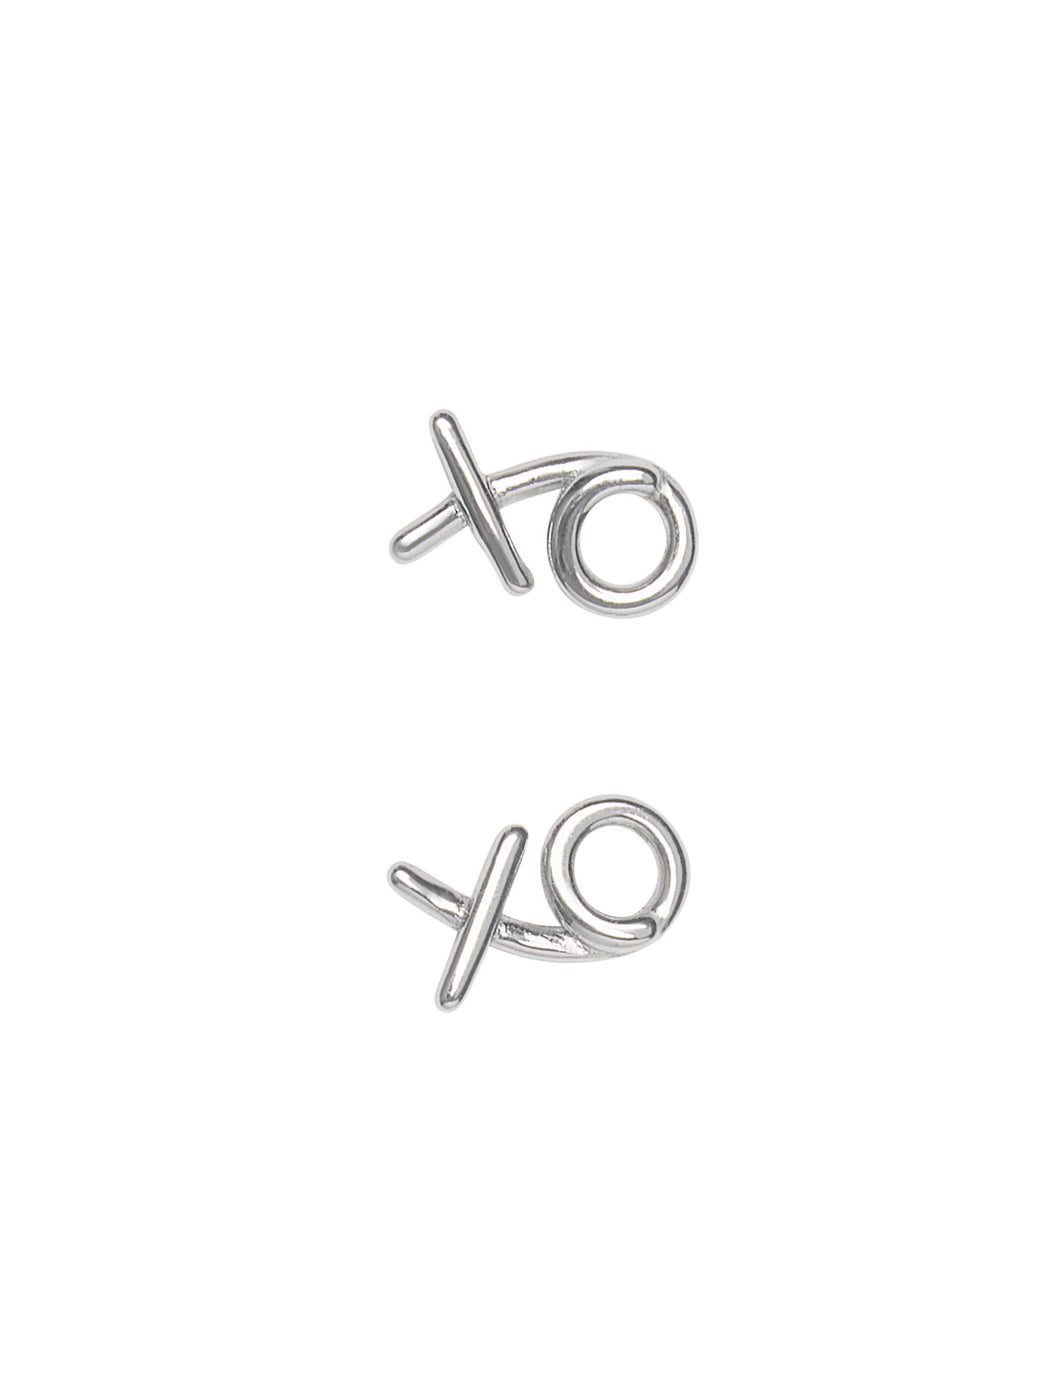 Pastiche Silver With Love Stud Earrings